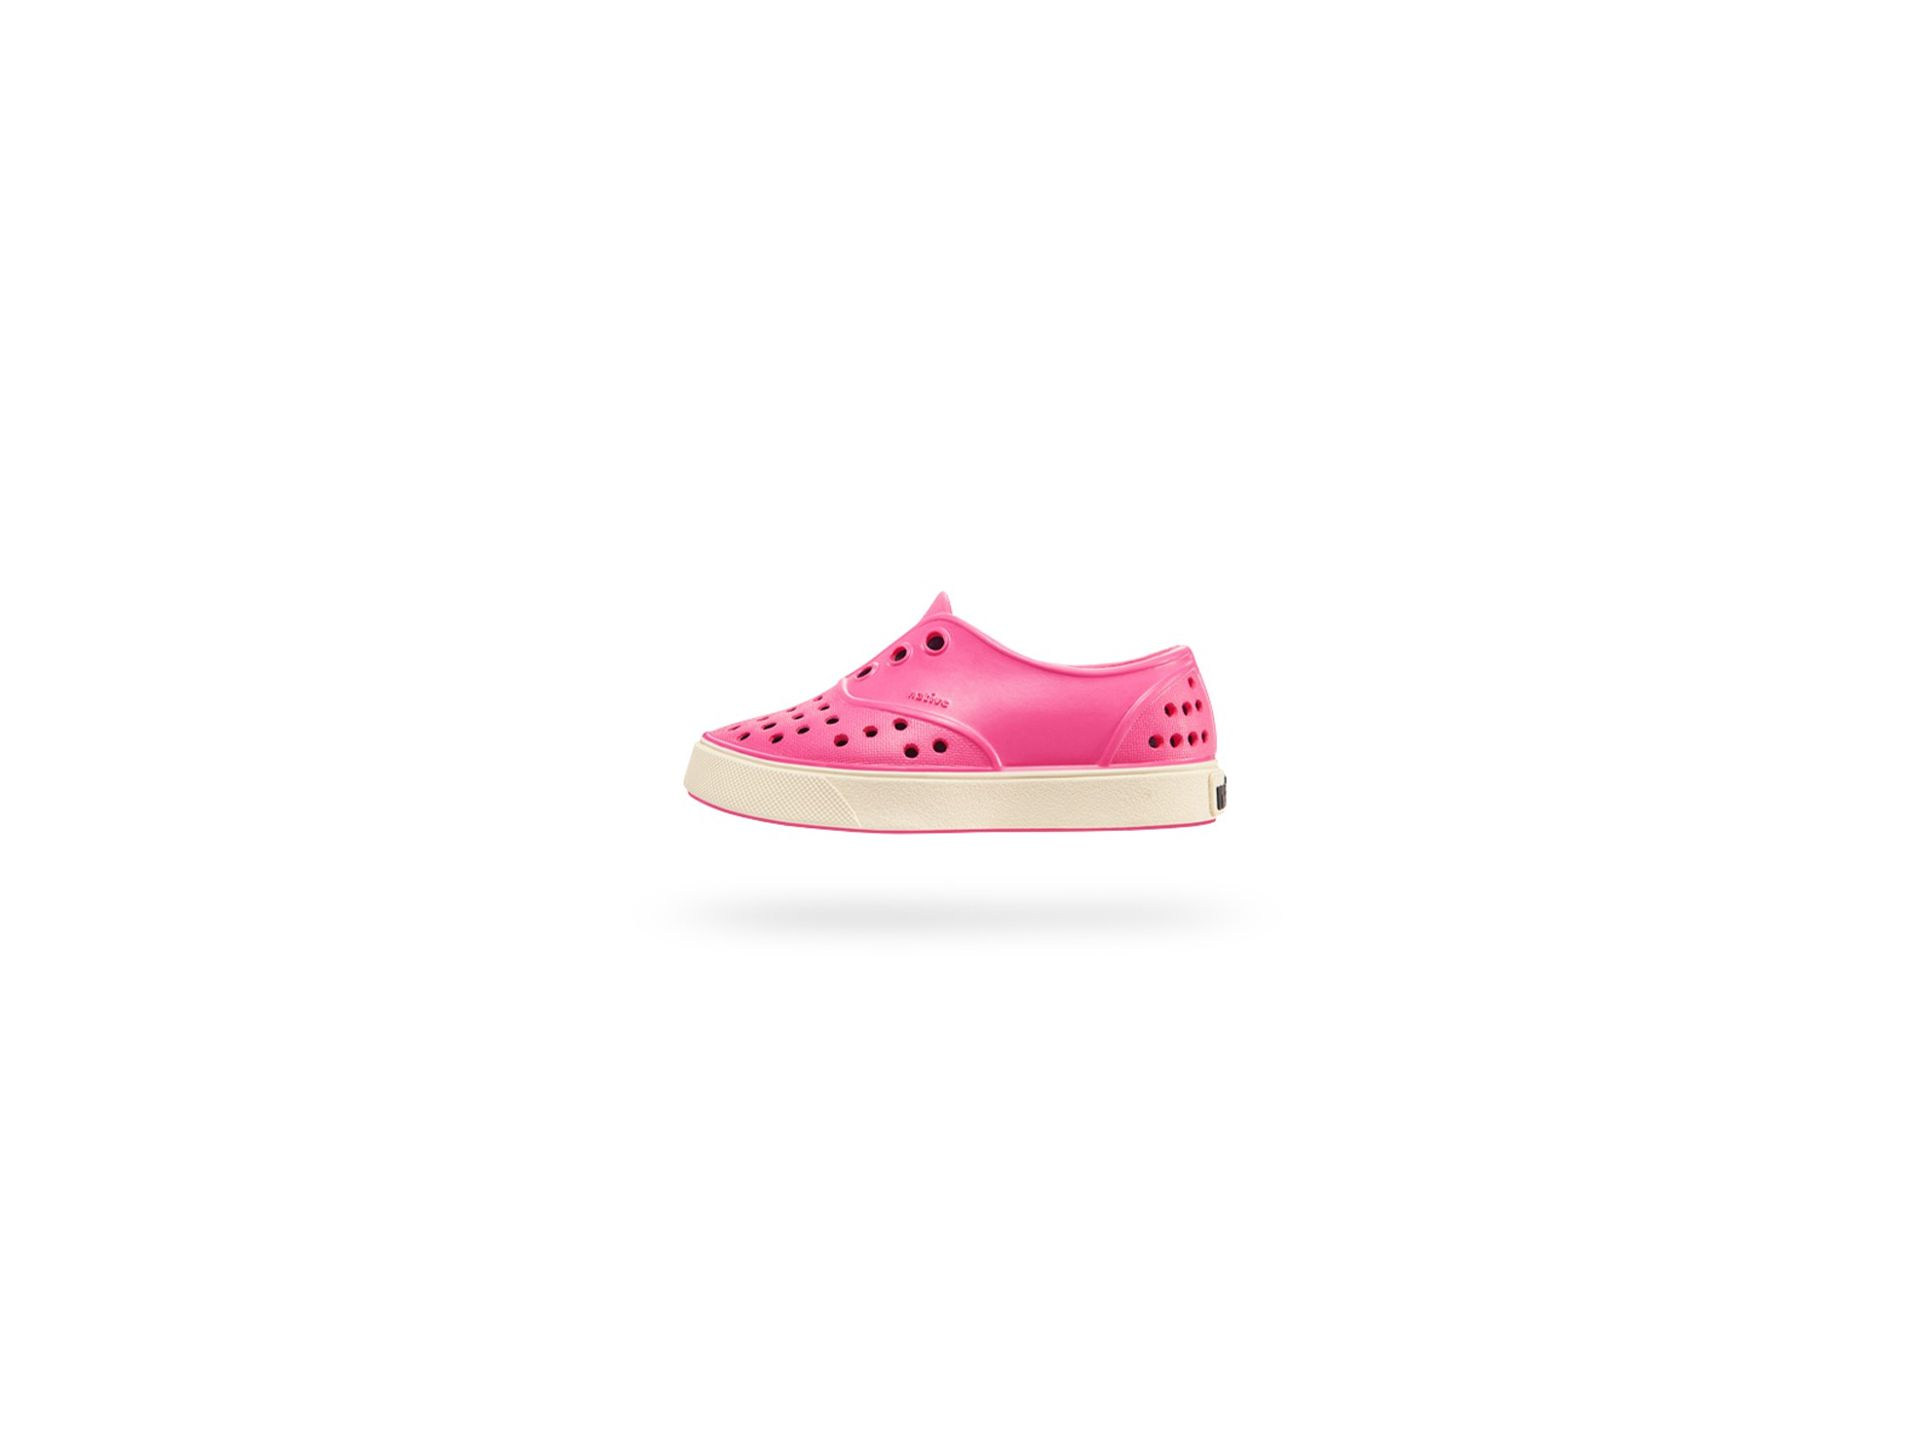 Native Shoes Toddler/Little Kid Miller Slip-On Shoe - Hollywood Pink - Hollywood Pink - C4